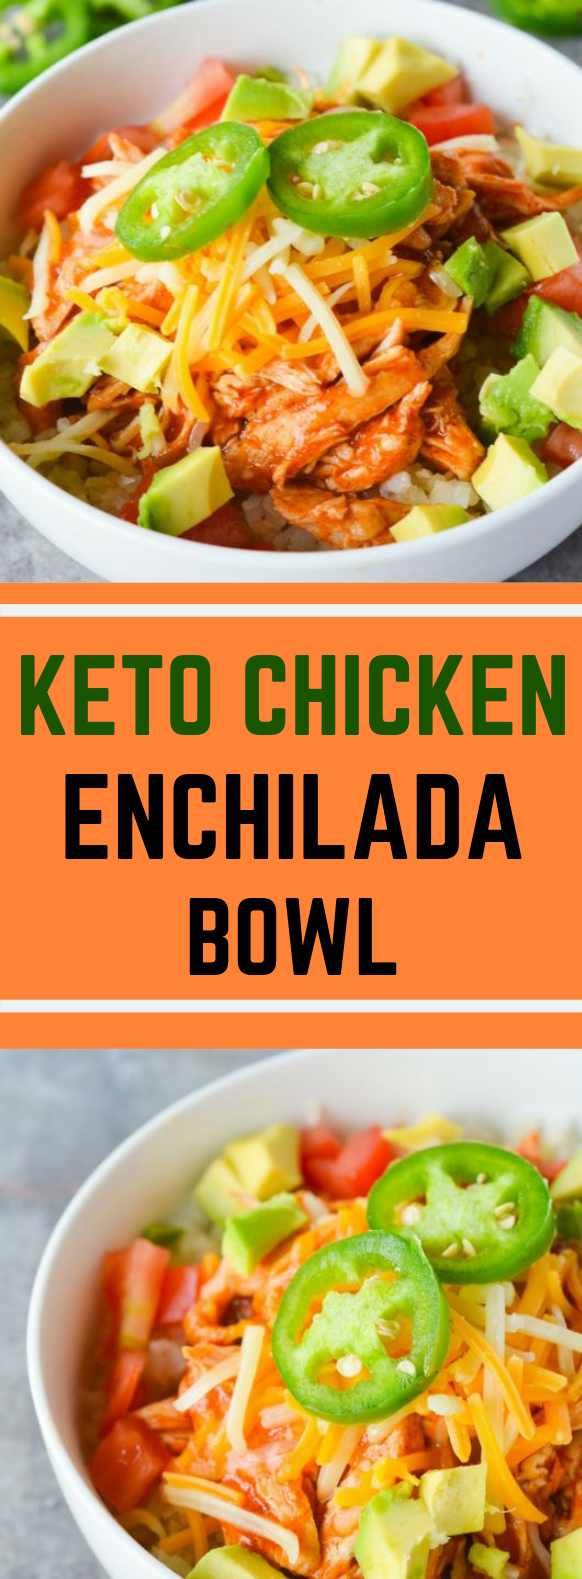 KETO CHICKEN ENCHILADA BOWL #Keto #Diet